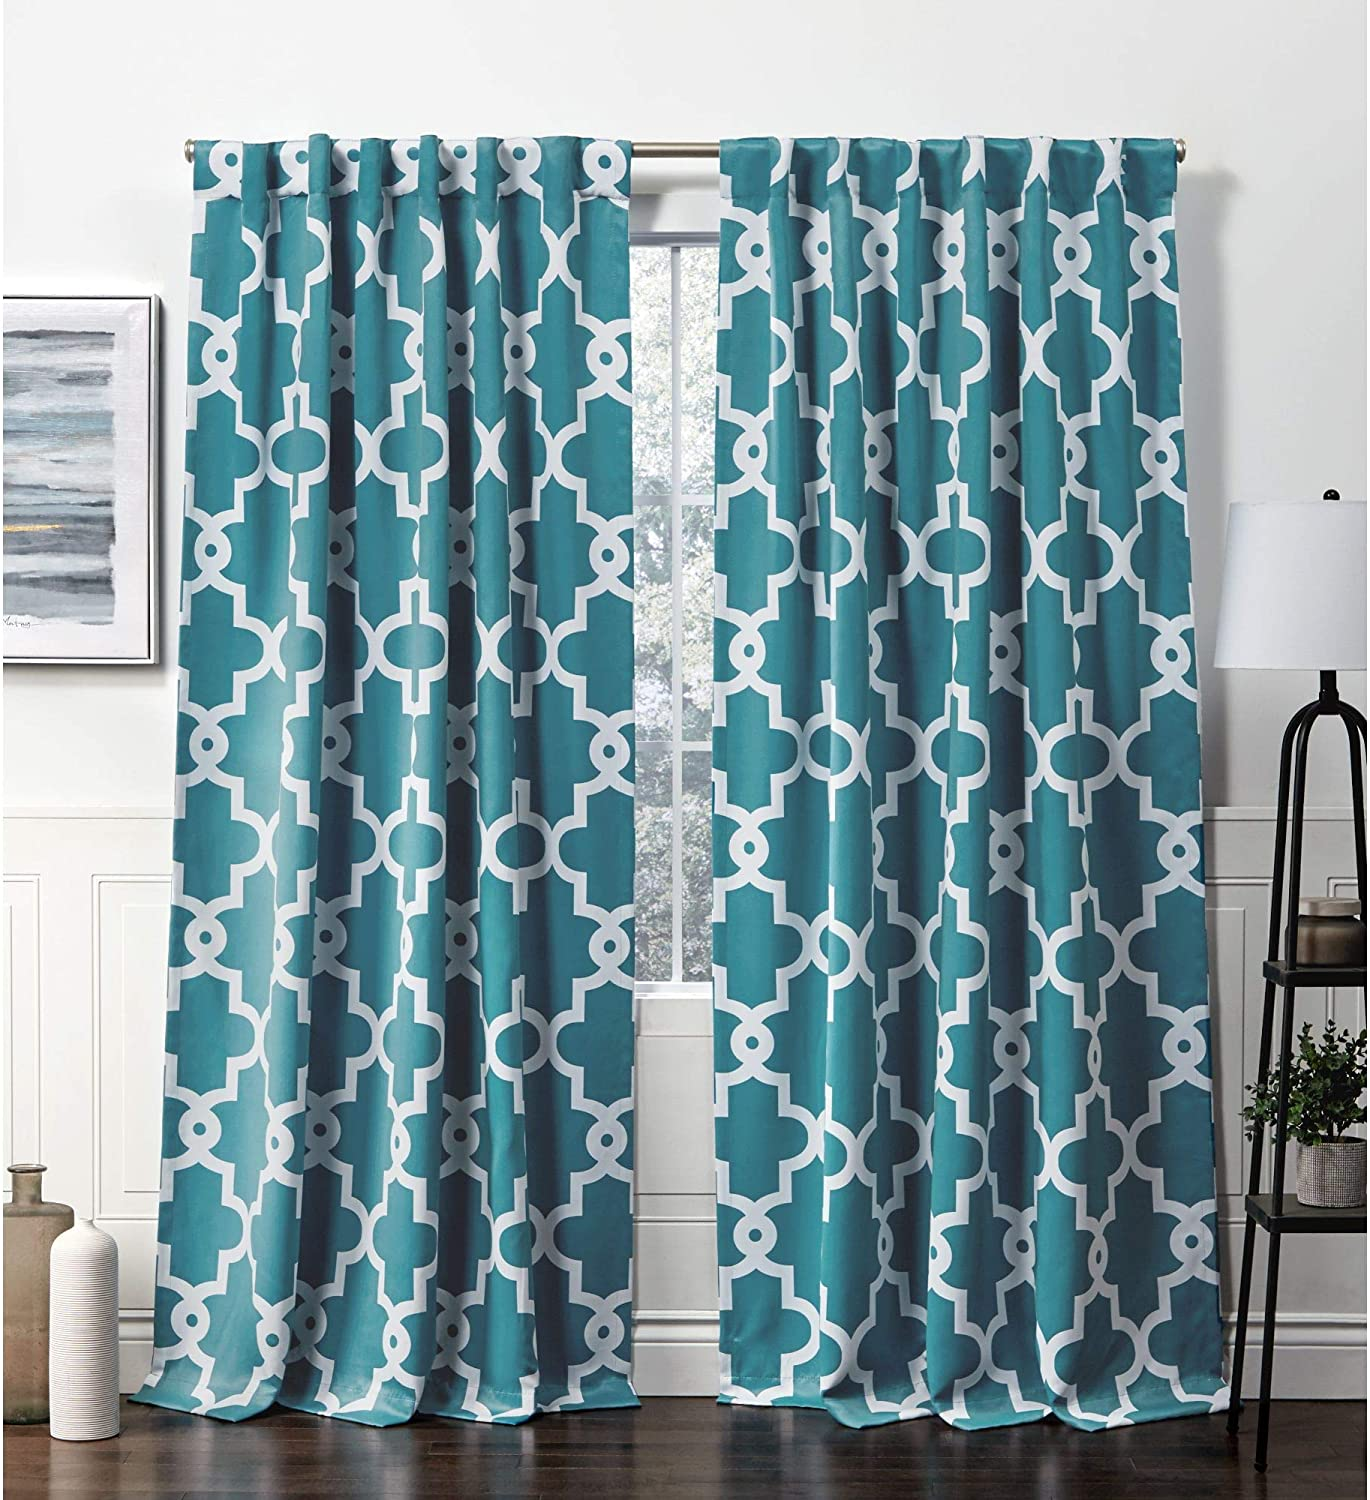 Amazon Com Exclusive Home Curtains Ironwork Hidden Tab Top Curtain Panel 52x84 Teal 2 Panels Home Kitchen